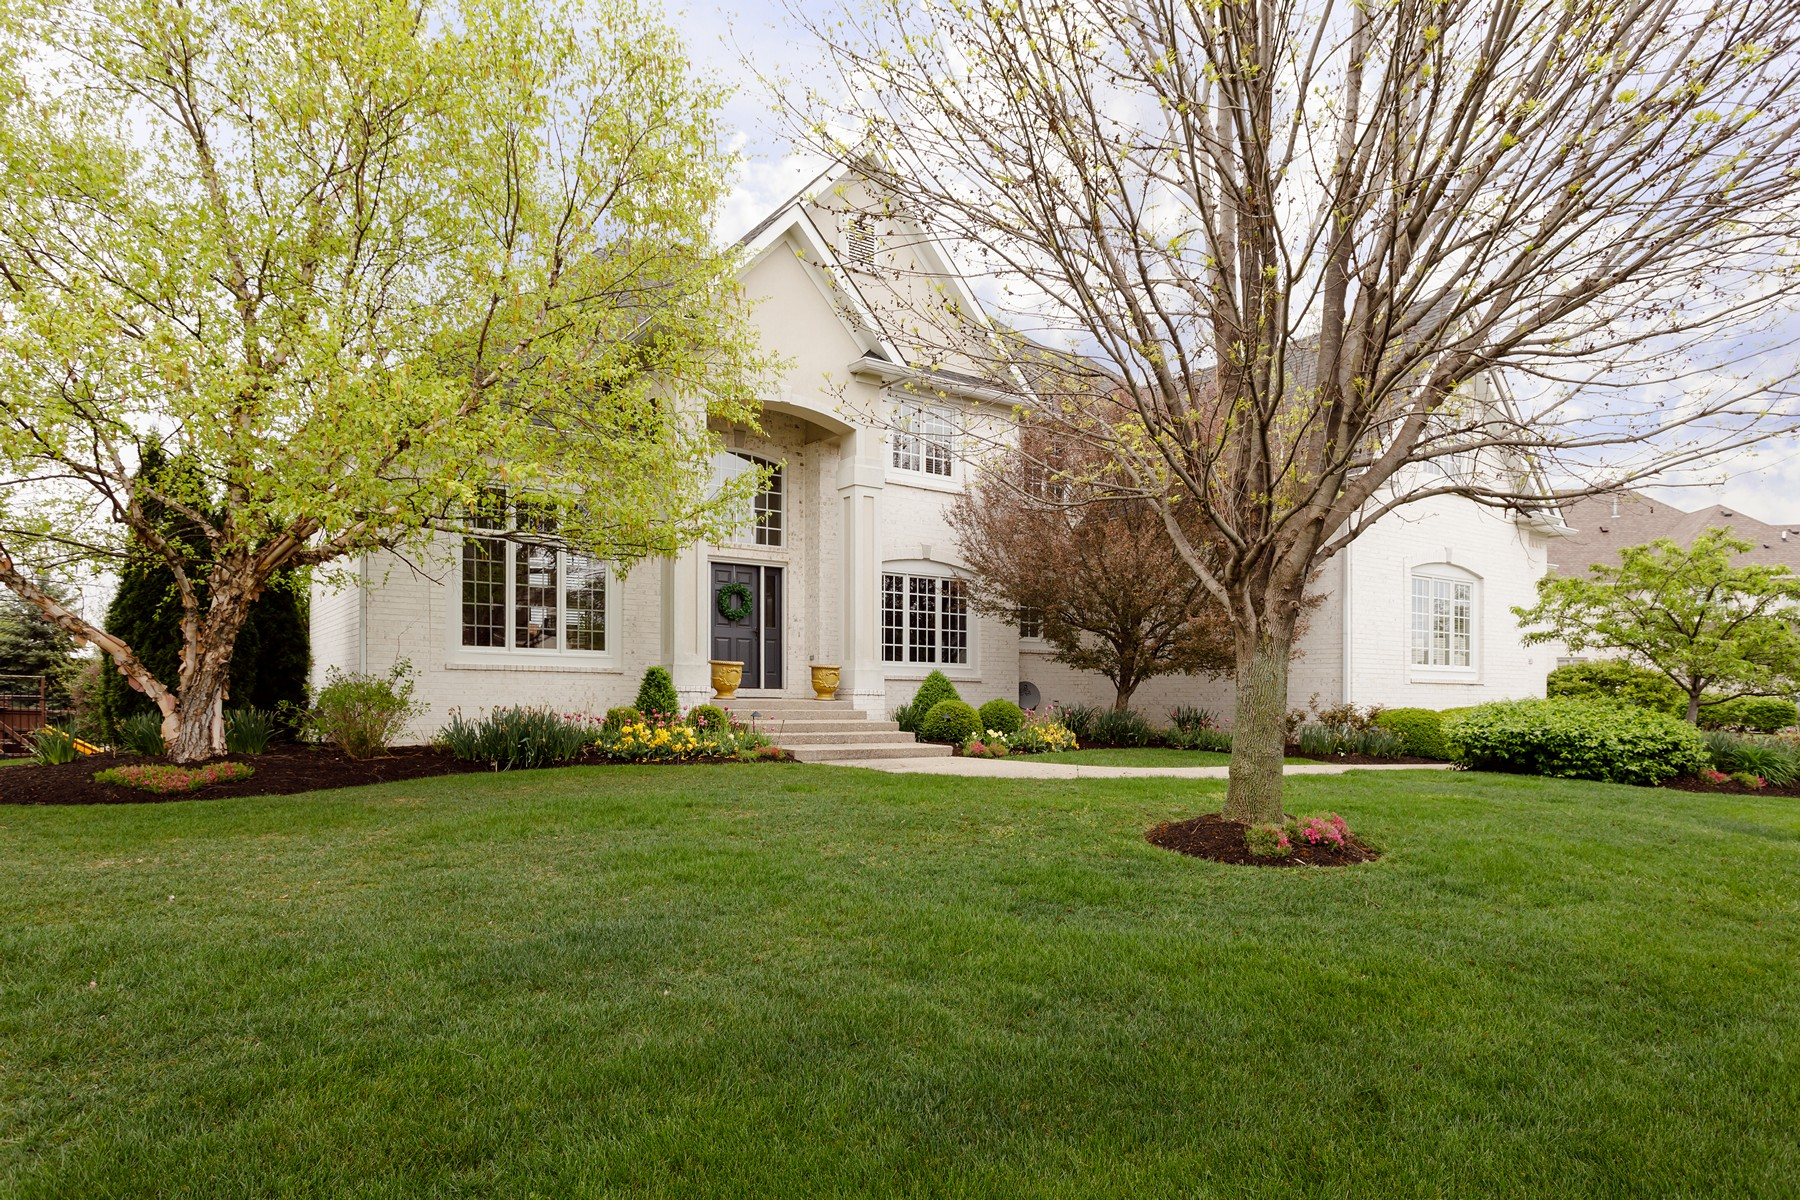 Single Family Home for Sale at Simply Perfection 924 Doe Run Drive Carmel, Indiana, 46032 United States